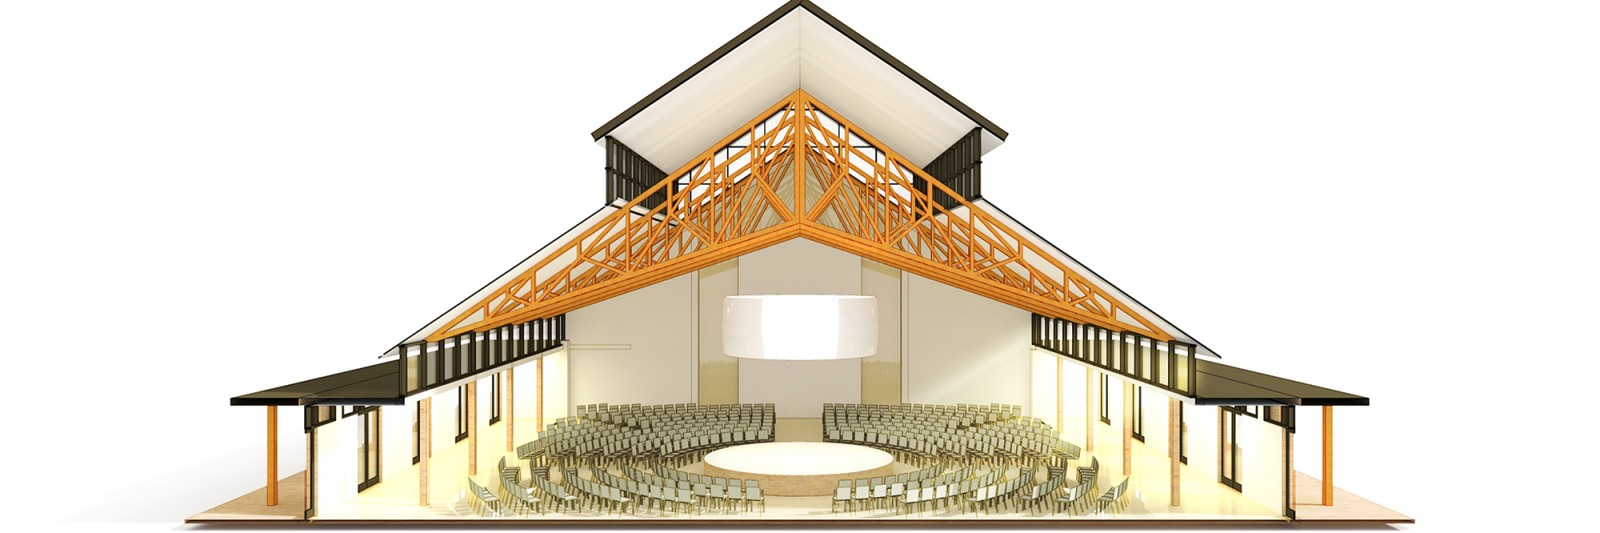 Future Church The Sustainable Church The Beck Group